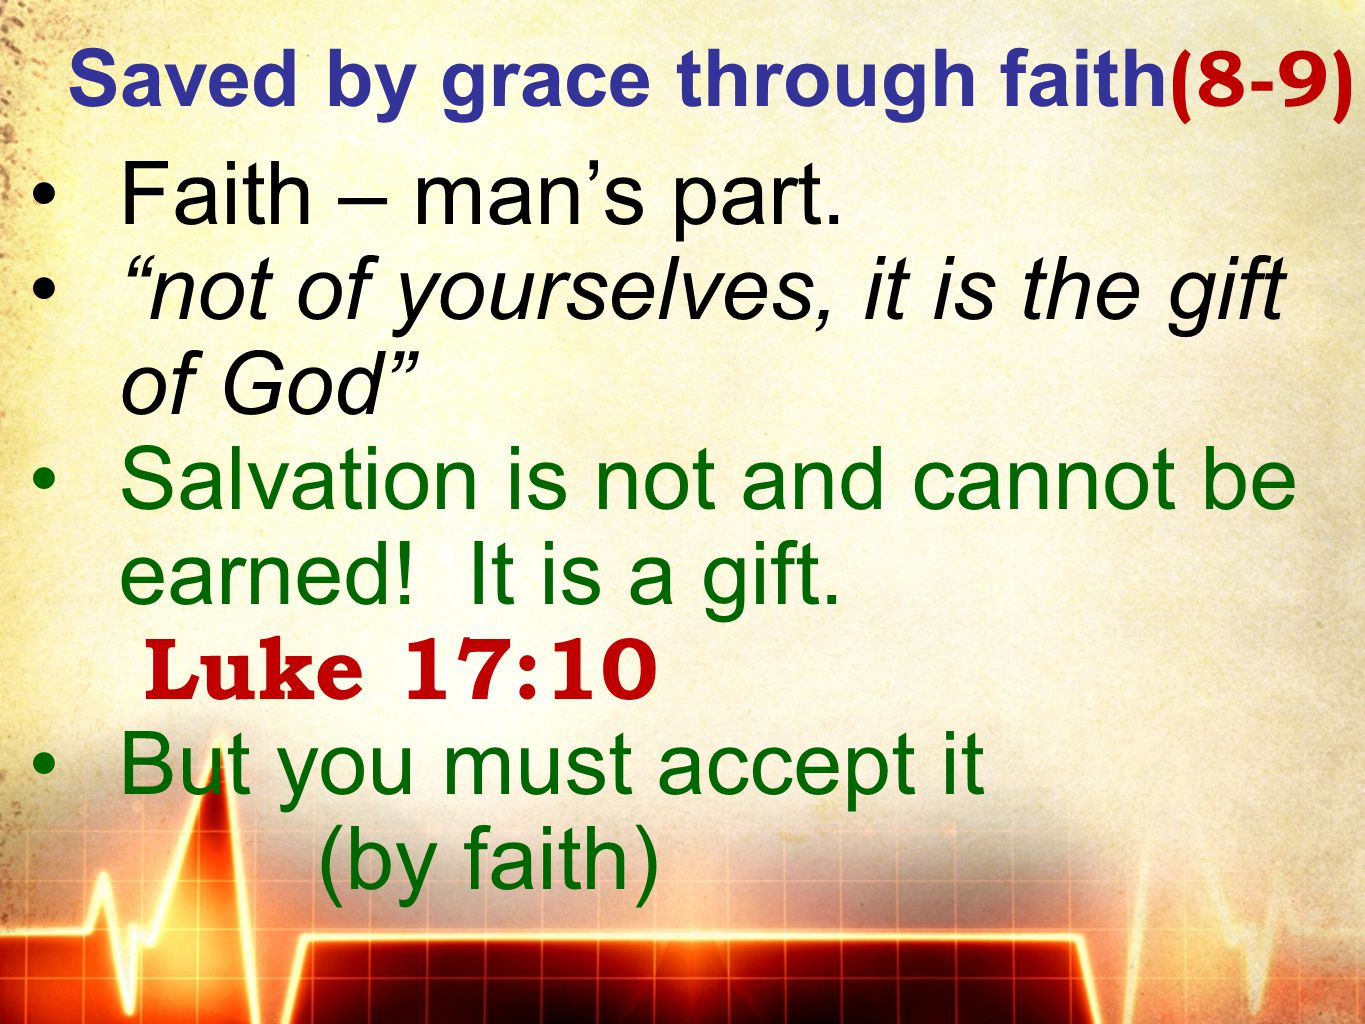 Saved by grace through faith (8-9) Faith – man's part.